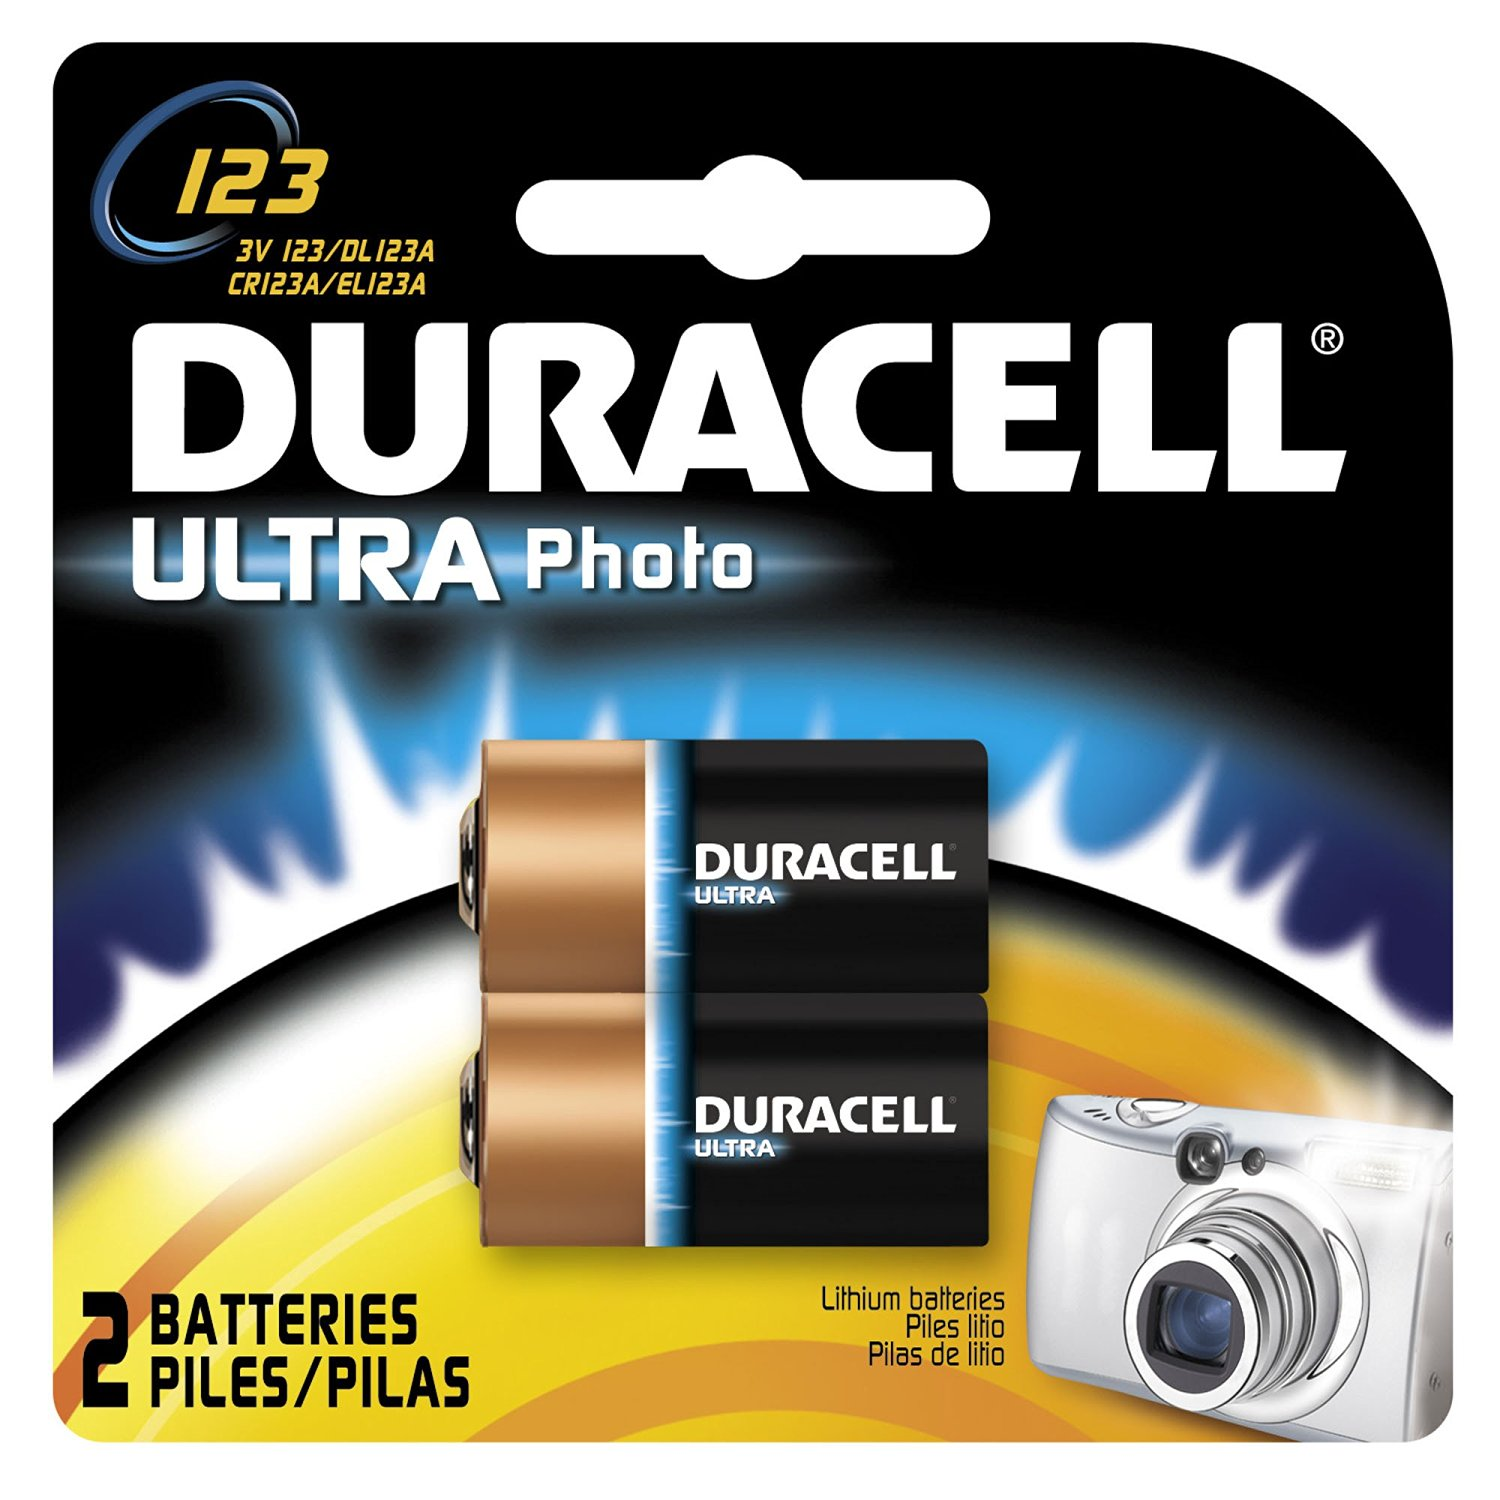 Duracell Ultra 123 3-Volt Camera Batteries, 2-Count Packages (Pack of 2)